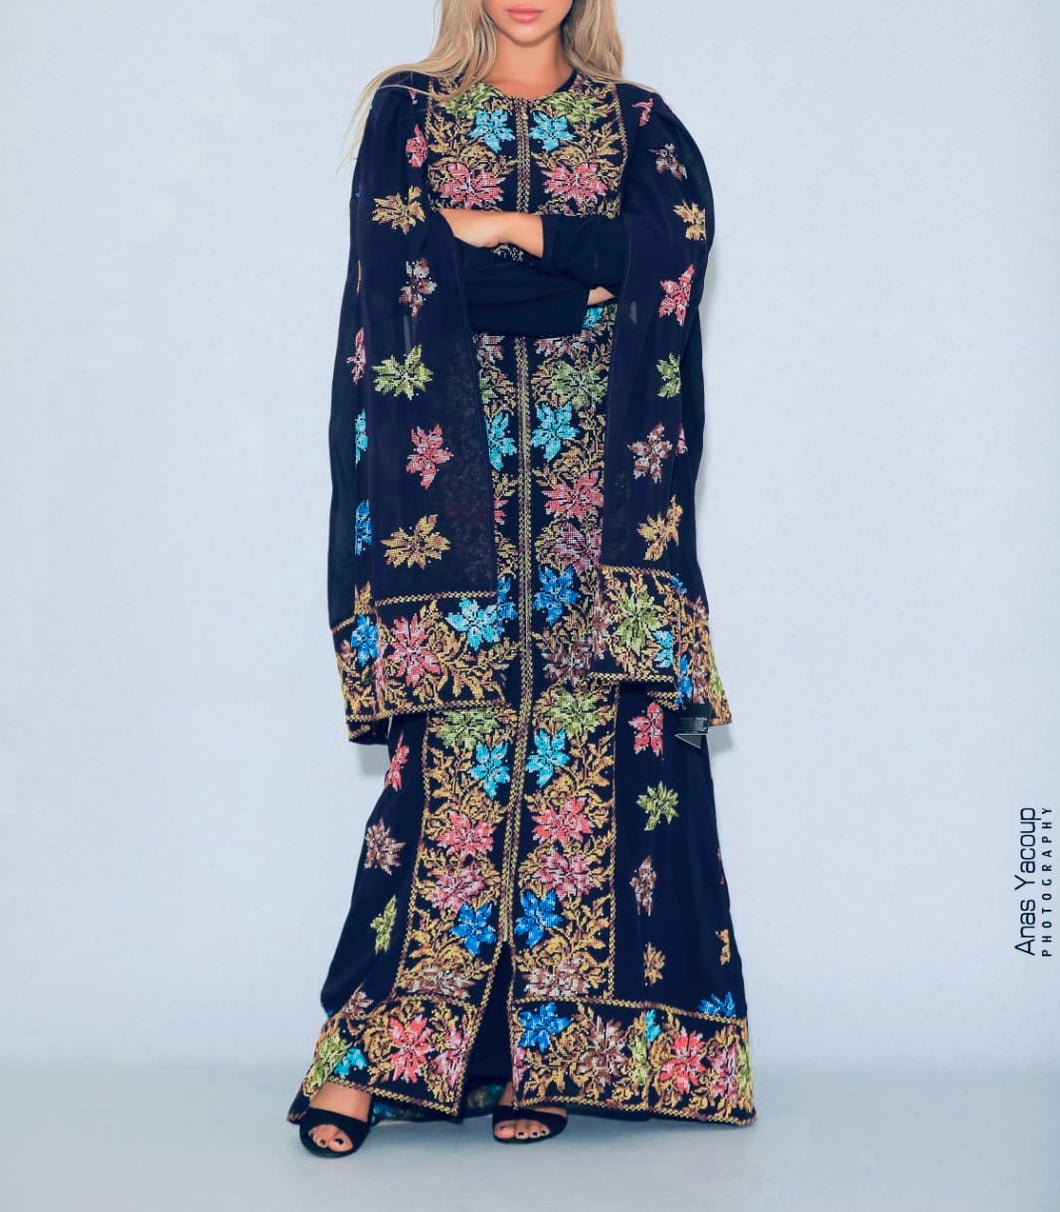 Distinctive Navy Grape Leaves Palestinian Embroidered Colorful Zippered Abaya Slit Sleeve